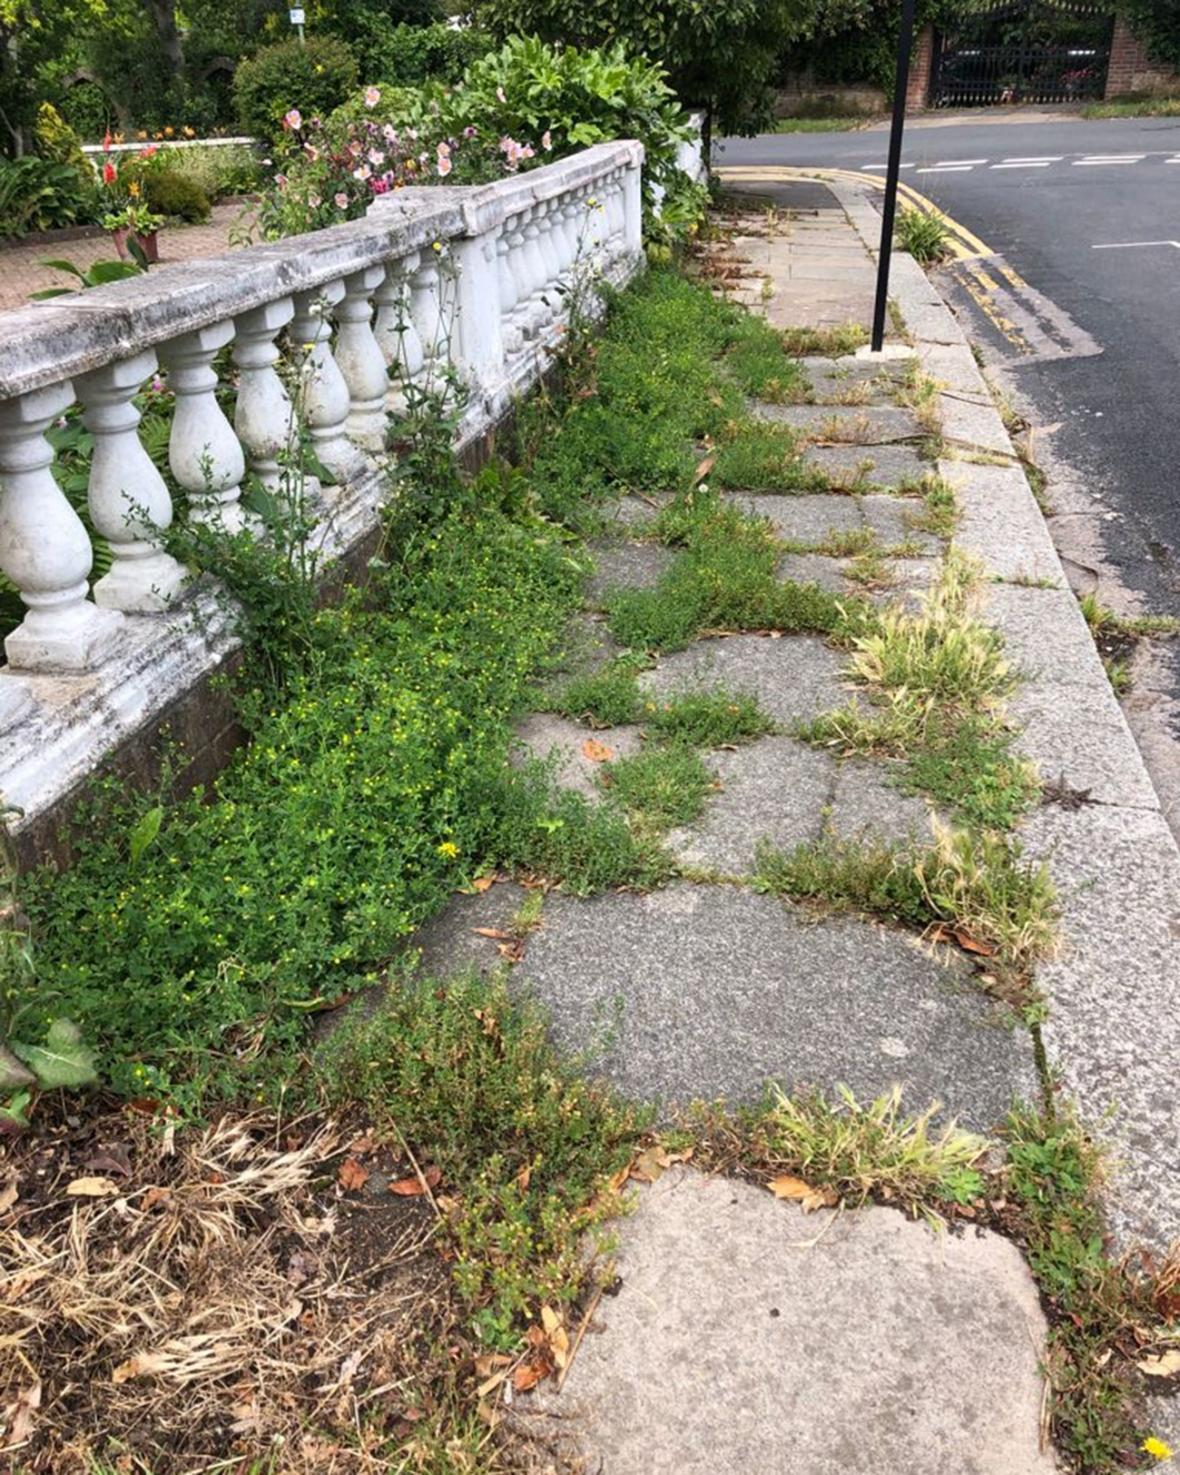 Two elderly women are understood to have suffered head injuries when they tripped over weeds